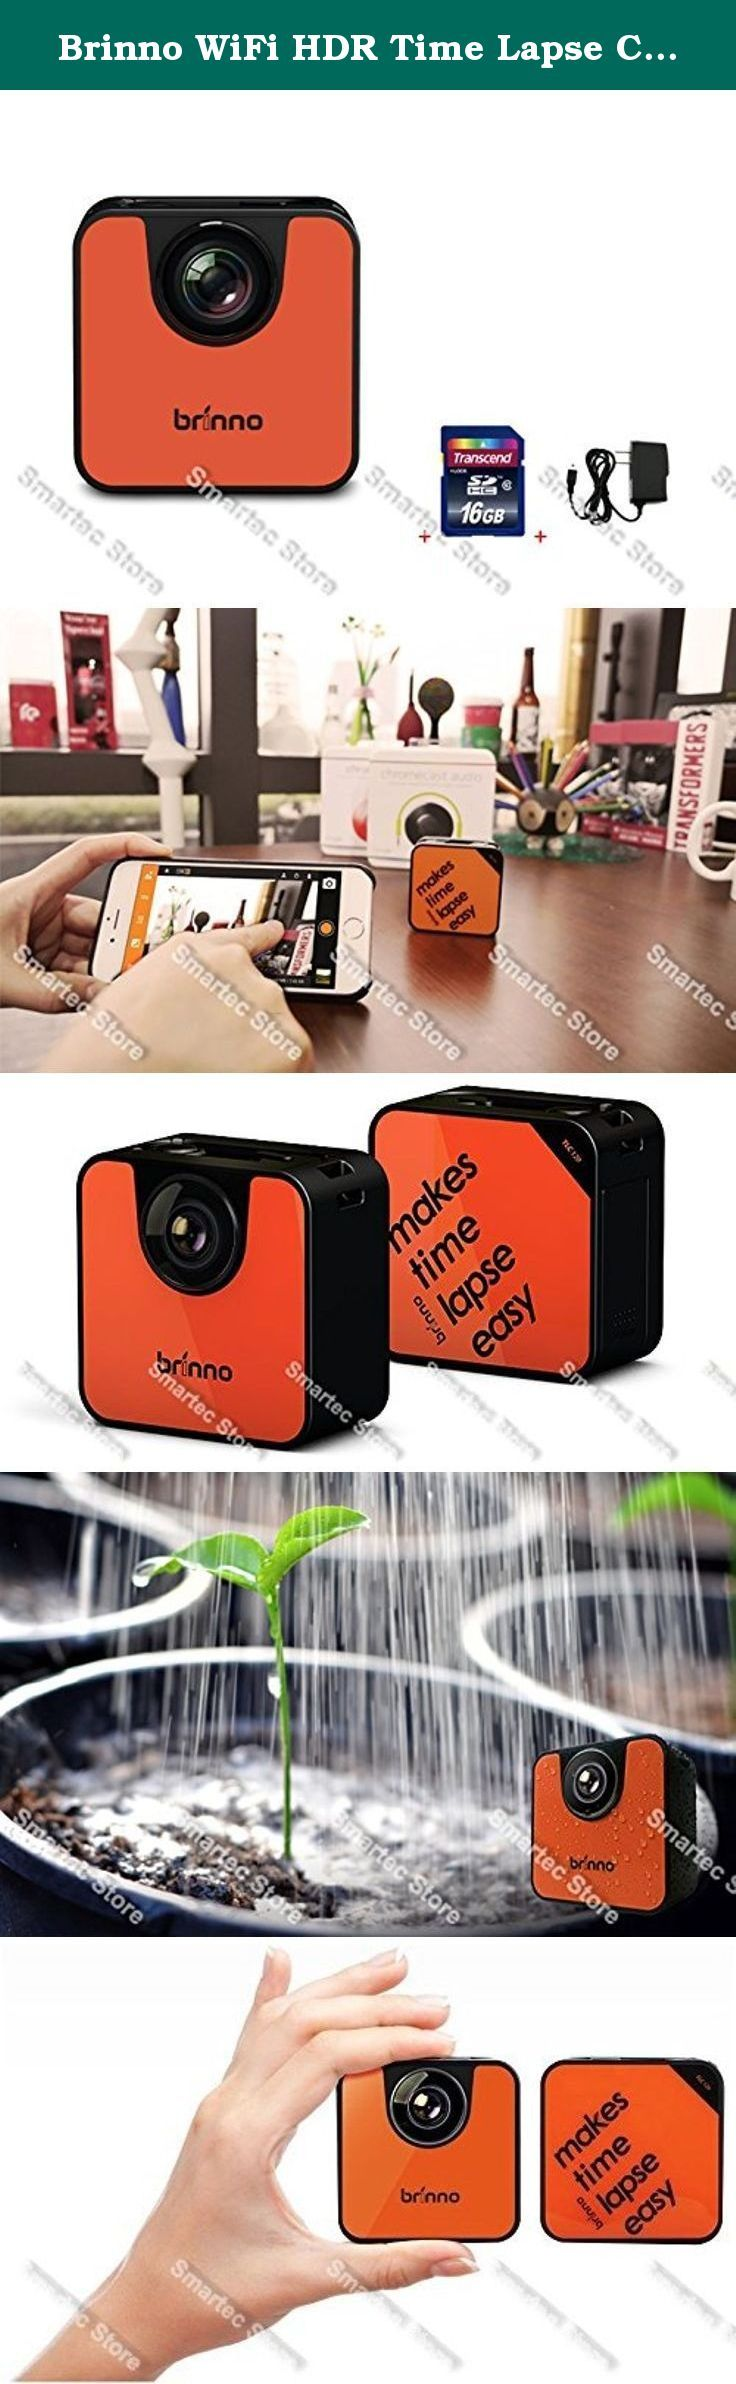 Brinno WiFi HDR Time Lapse Camera TLC120 + 16GB SD Card + Wall Power Supply. With Brinno Time Lapse Video 1, 2, 3 solution, at the push of a button even without the help of Brinno Camera APP, Brinno TLC120 capture photos and make time lapse videos automatically!*Without the help of Brinno Camera APP, press and hold the Shutter Button once for three seconds. The camera status lights (green) flash one time, your camera is on and will take the time lapse video with the last time camera set…